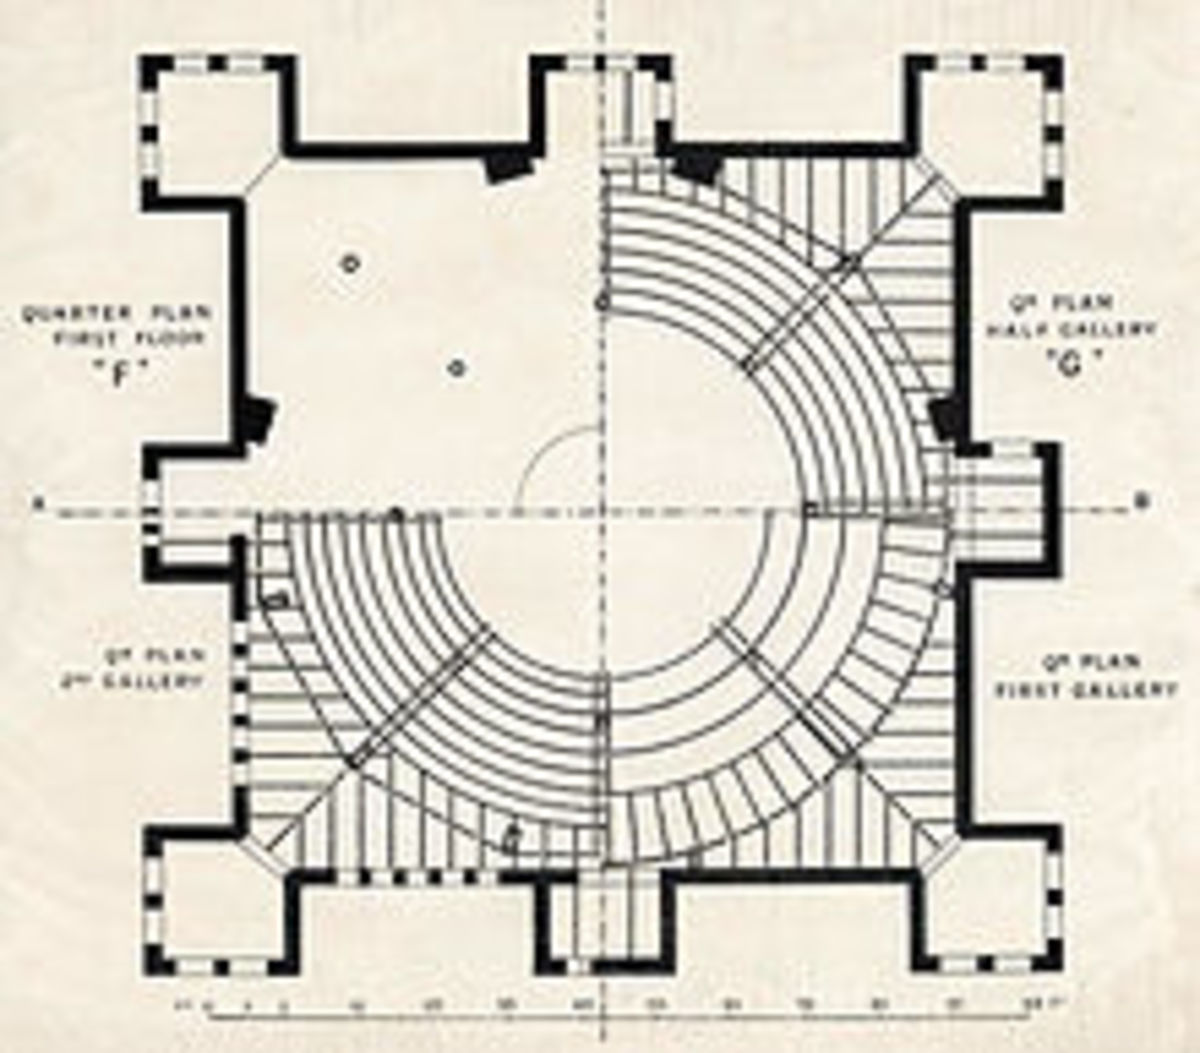 An architects floor plan recently found